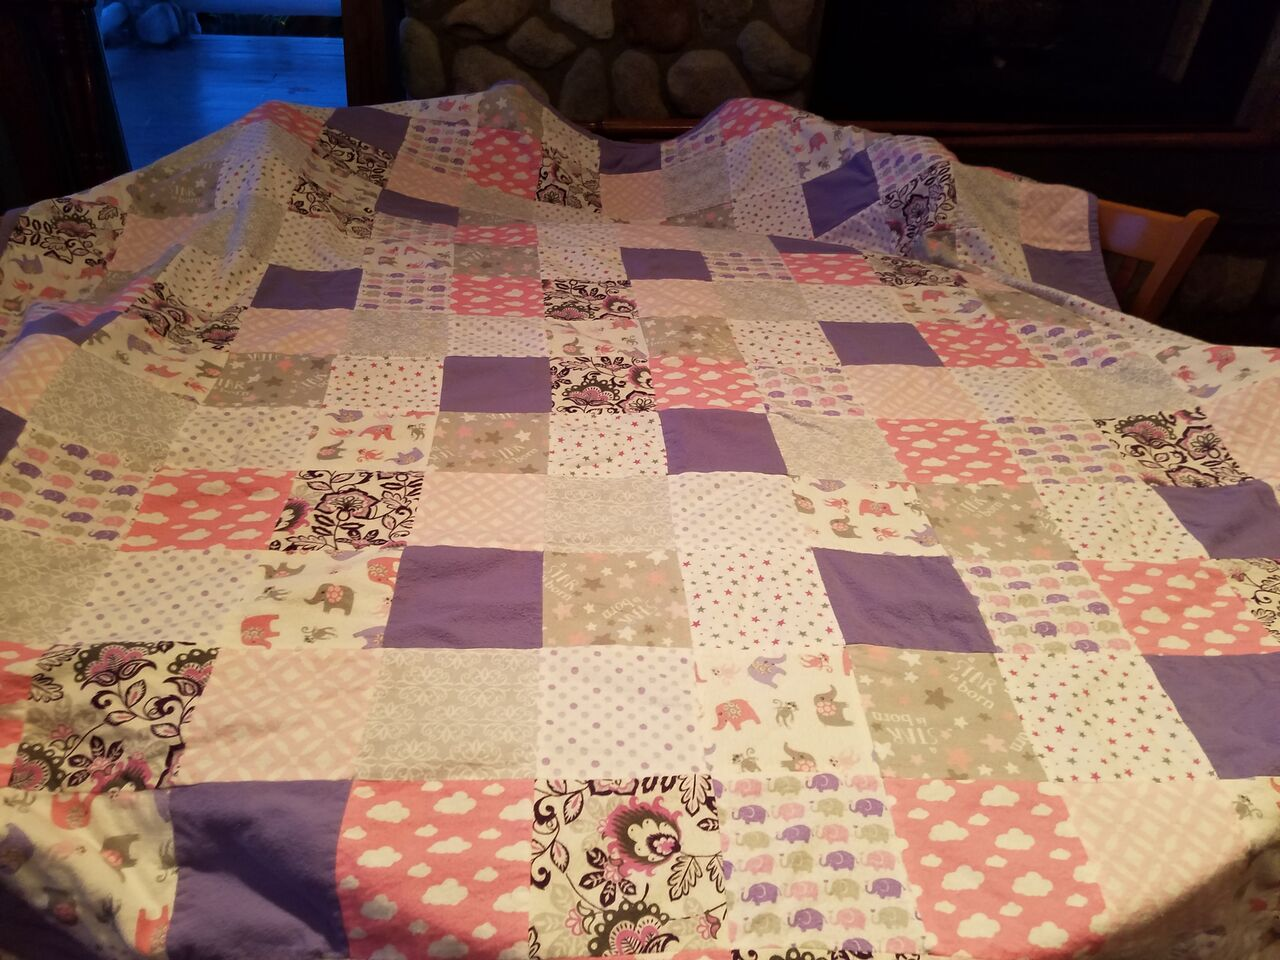 2ndroundquilts.jpeg